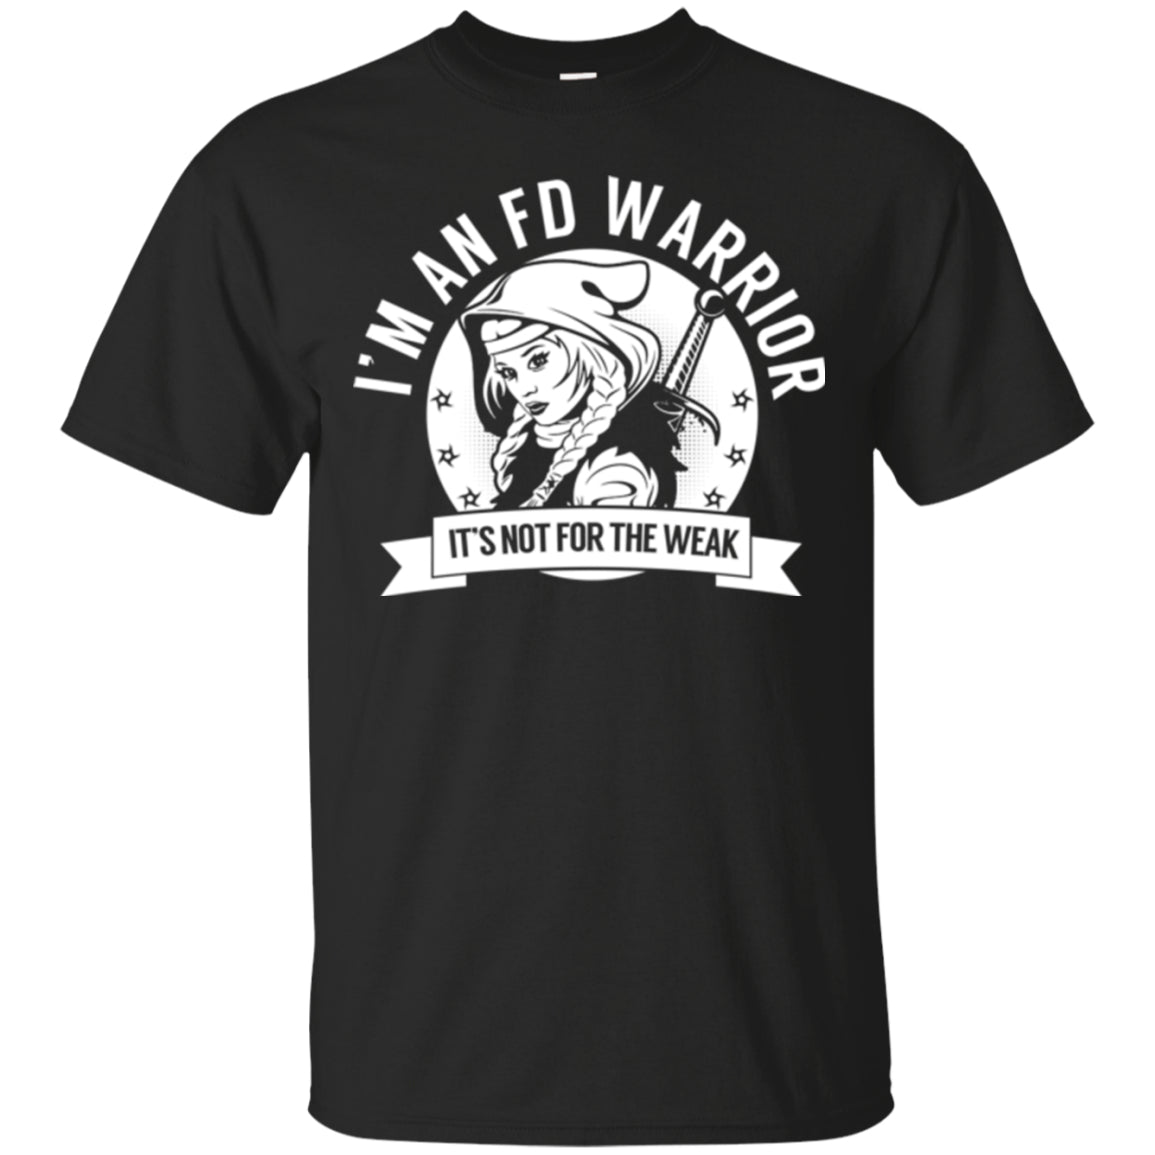 Fibrous Dysplasia - FD Warrior Hooded Unisex Shirt - The Unchargeables